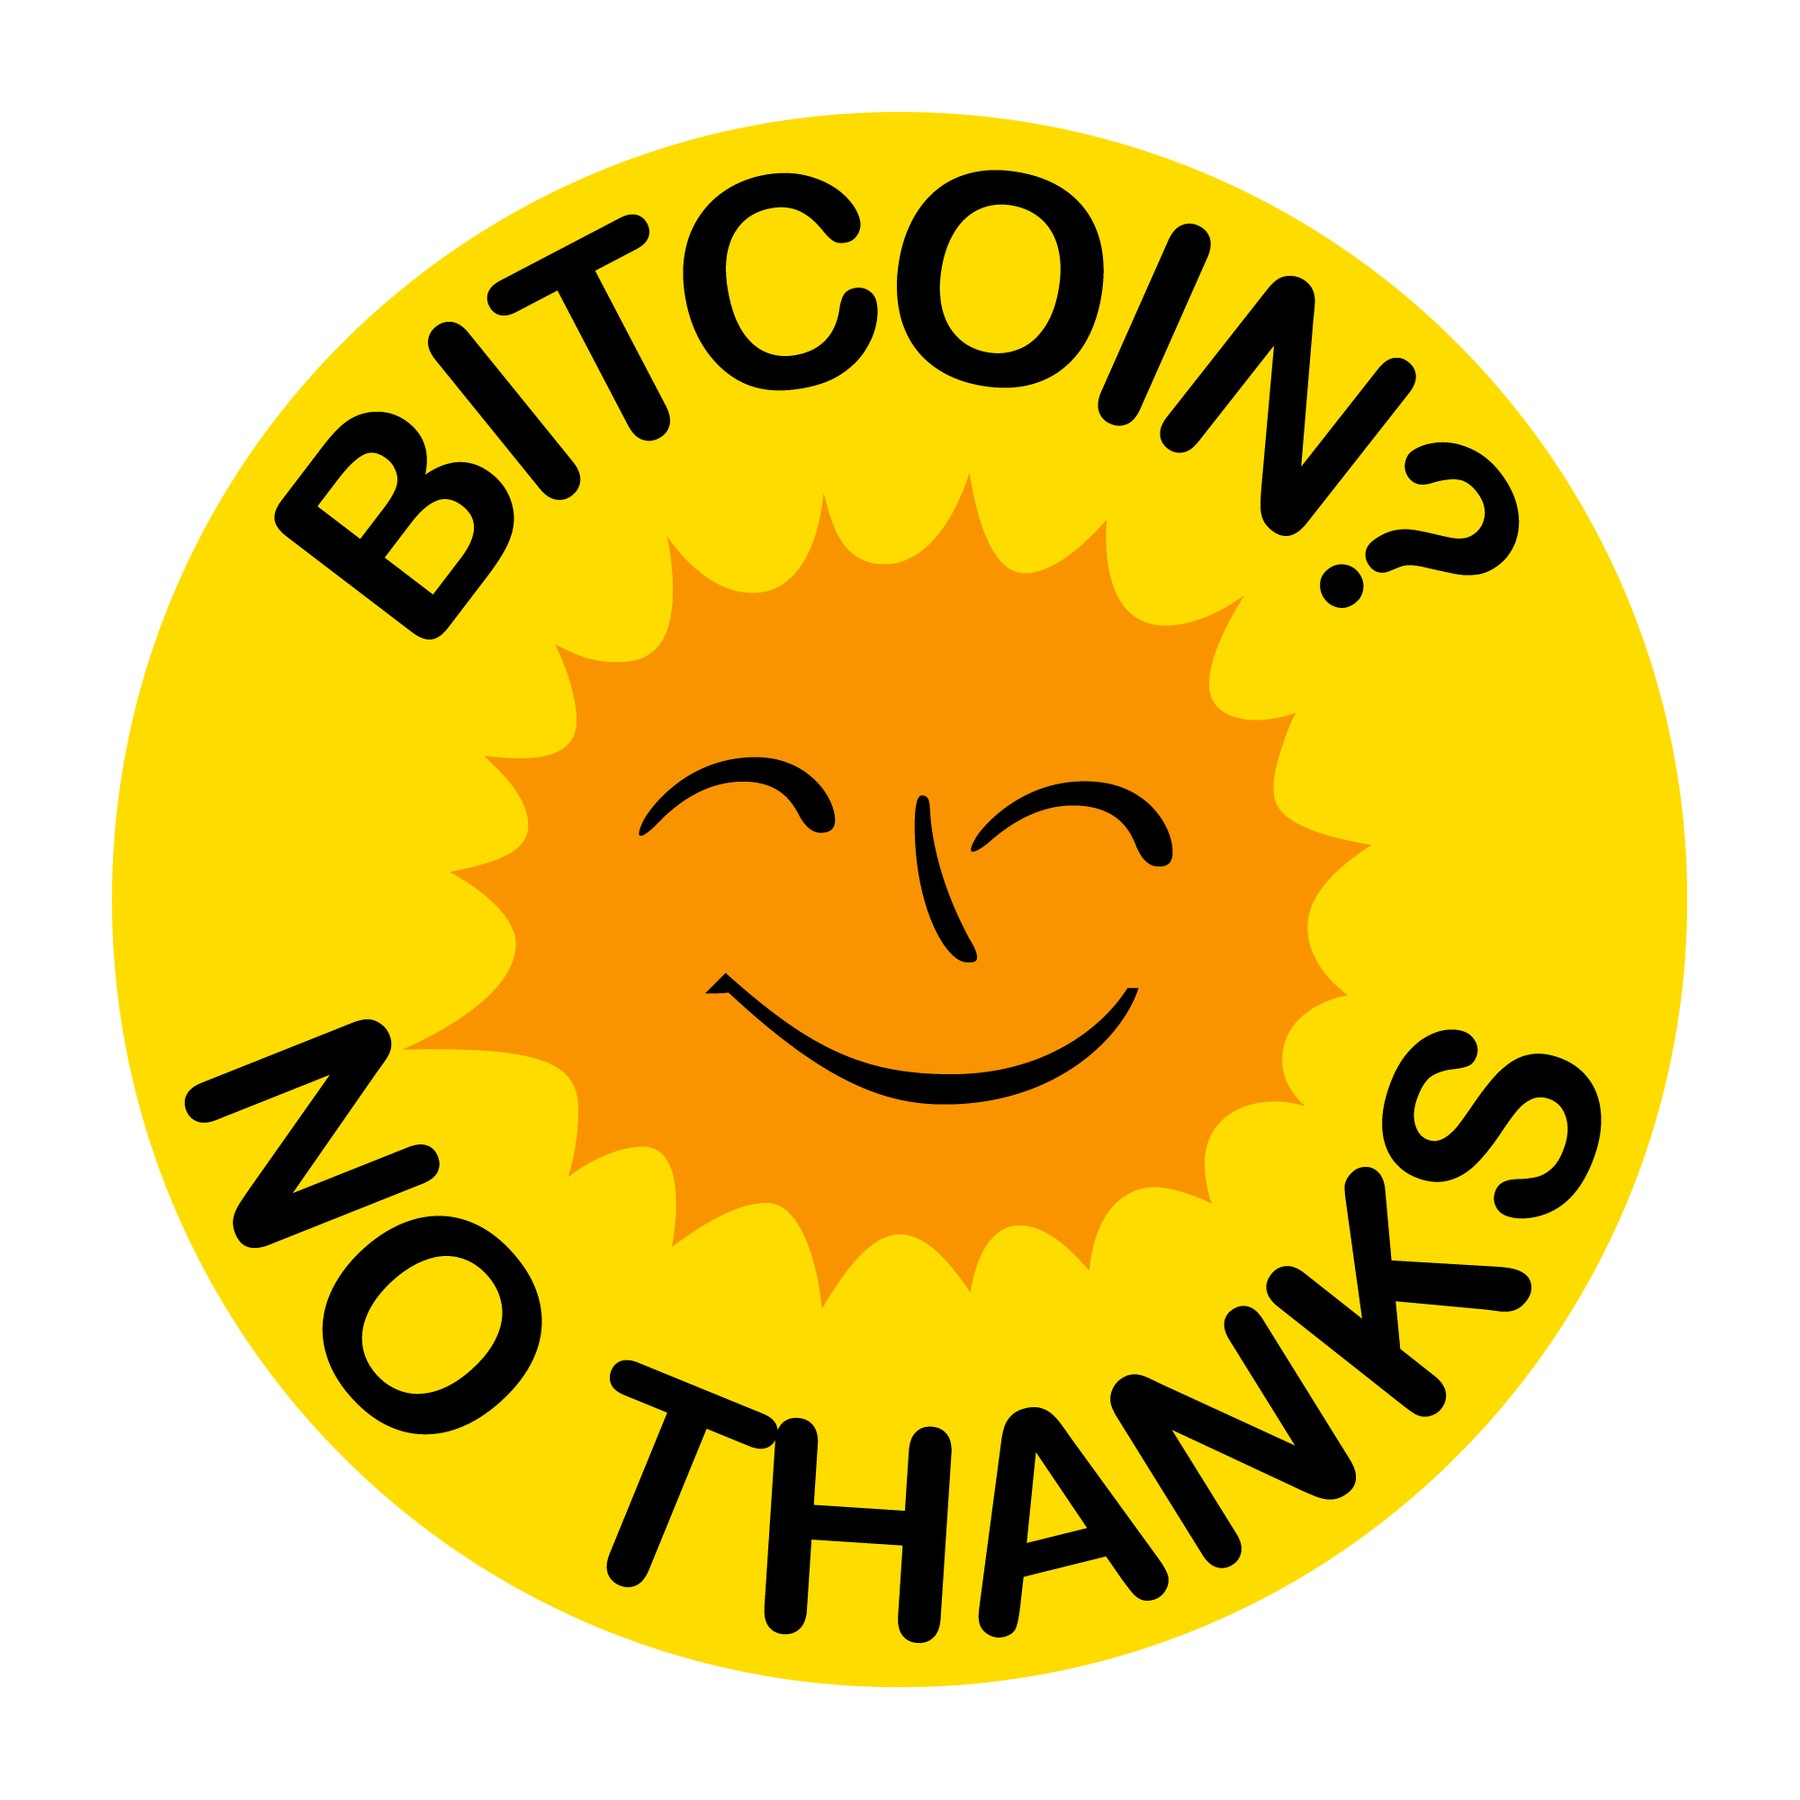 Bitcoin? No Thanks